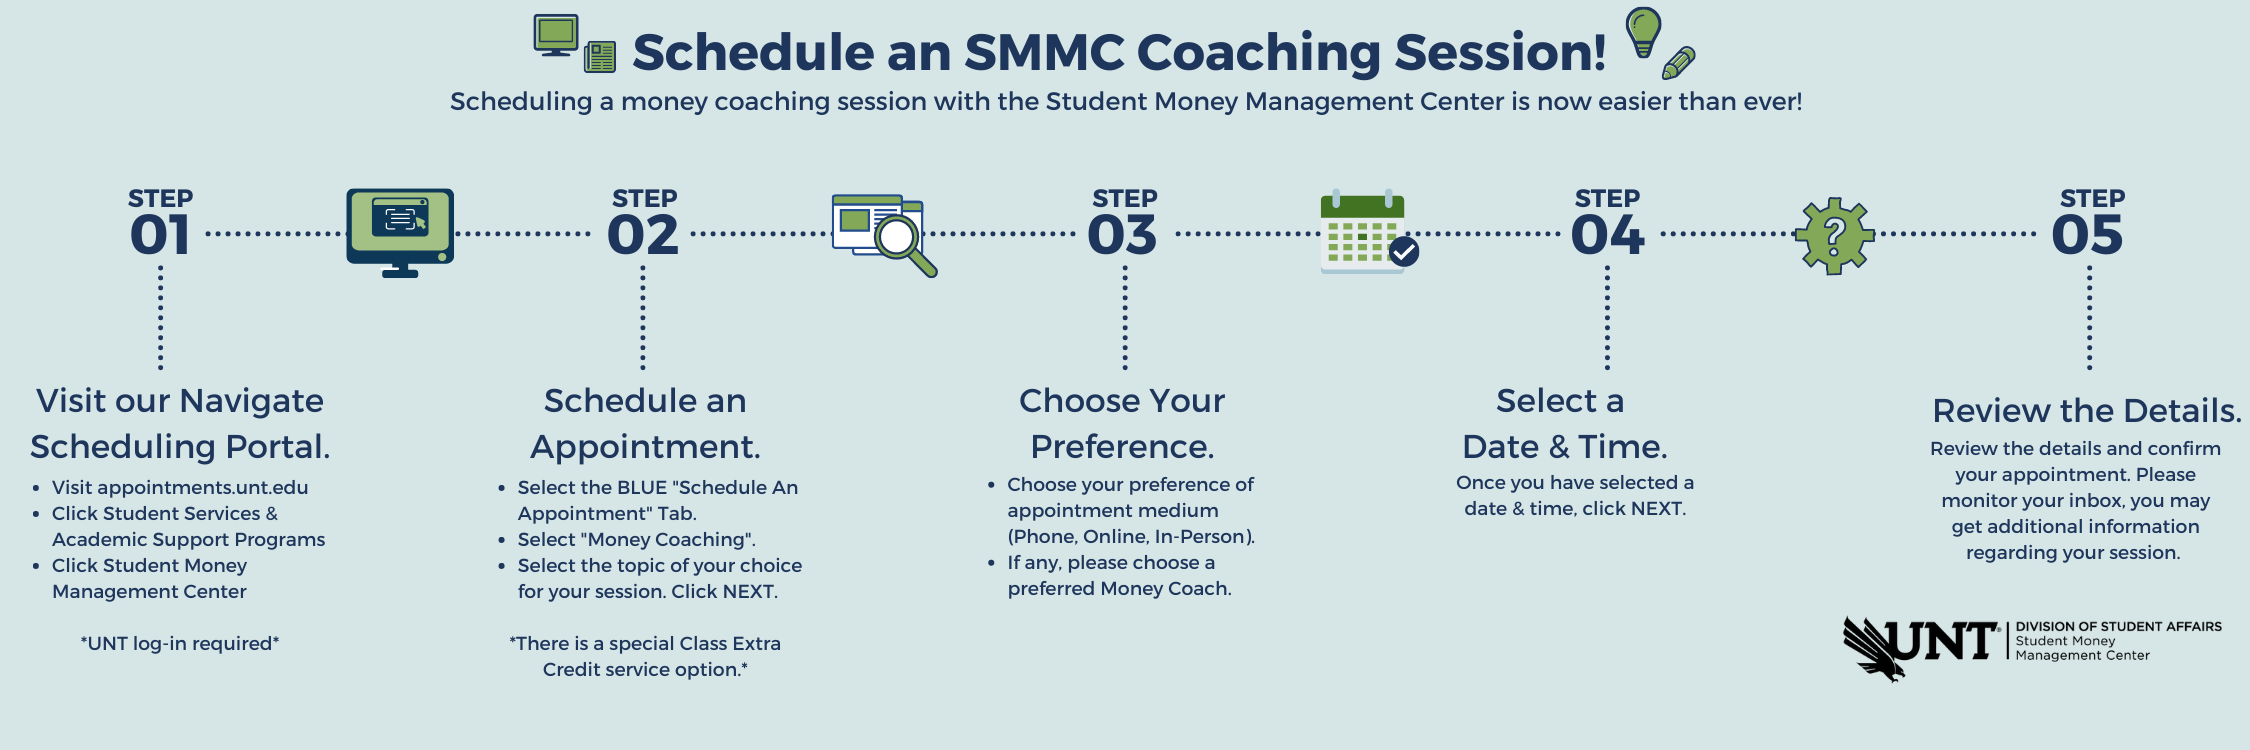 Steps for scheduling a coaching session with SMMC